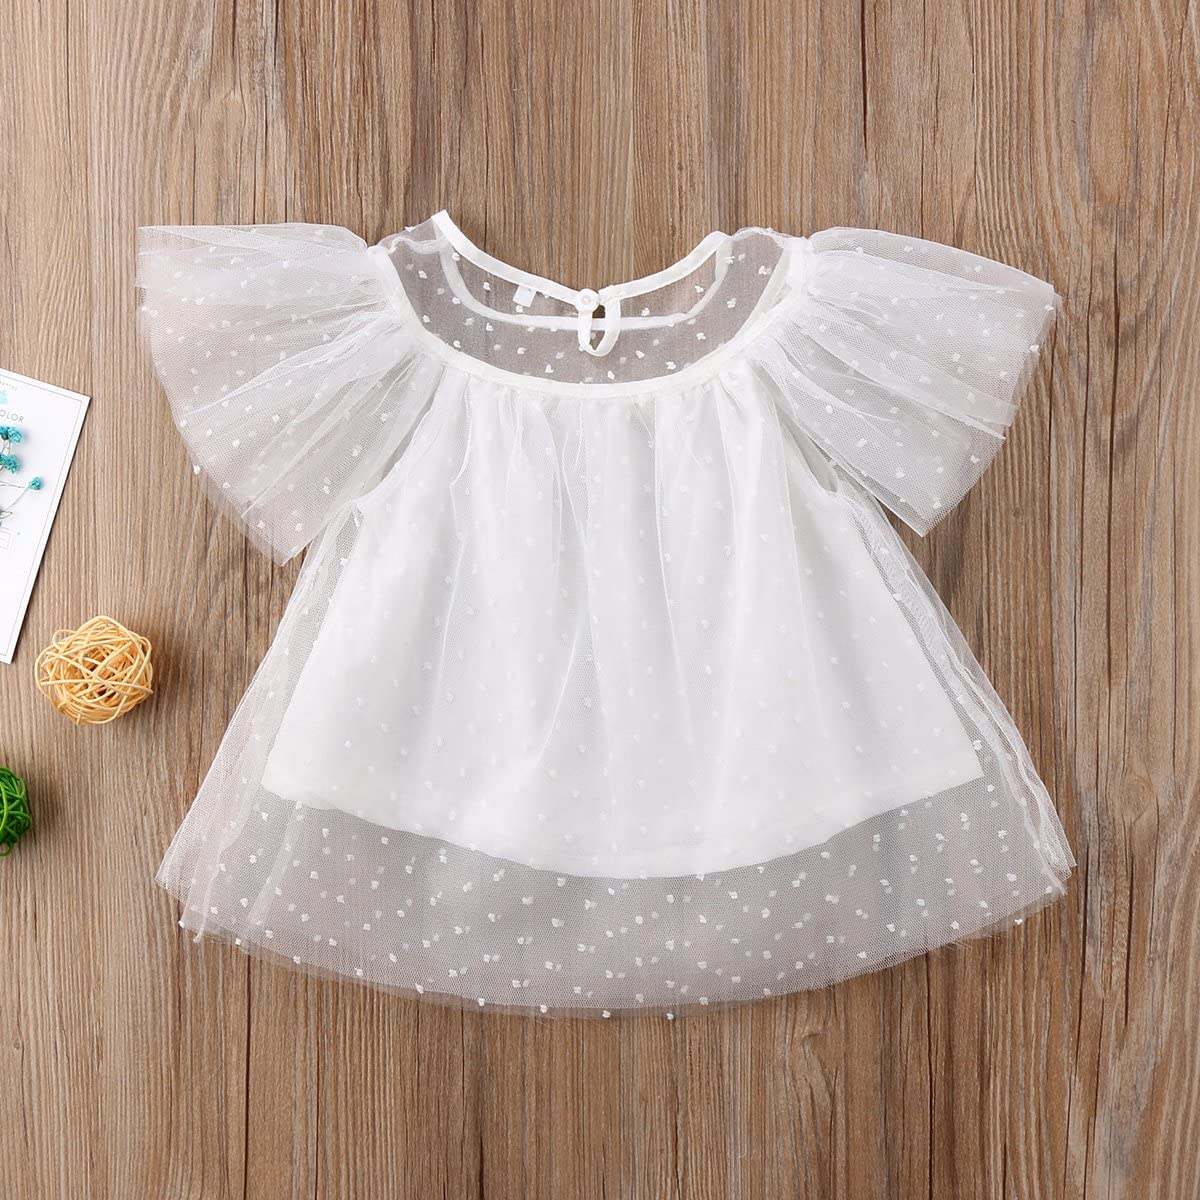 Lahyra Baby Girl Lace Tutu Top Ruffle Sleeve Shirt Blouse Fashion Summer Sunsuit Clothes